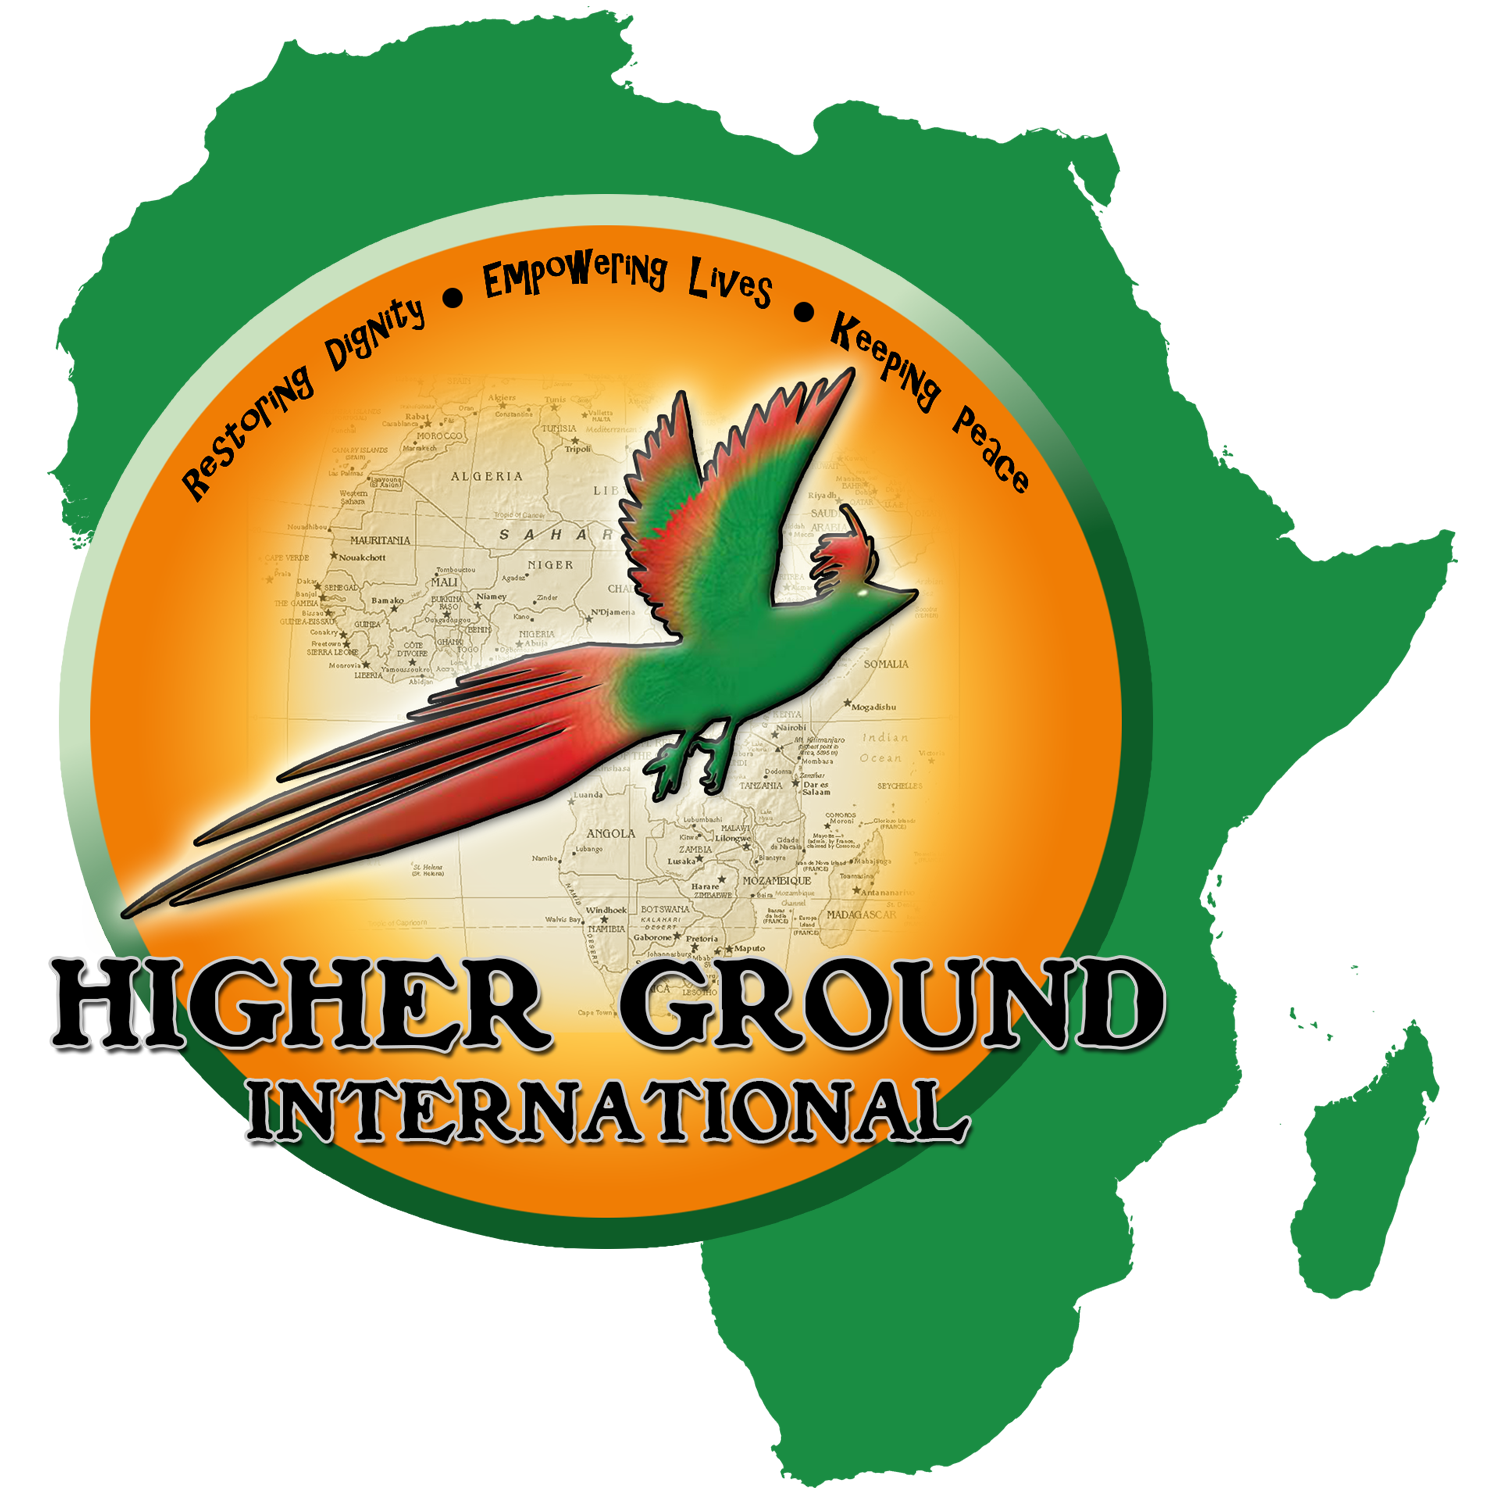 Higher Ground International